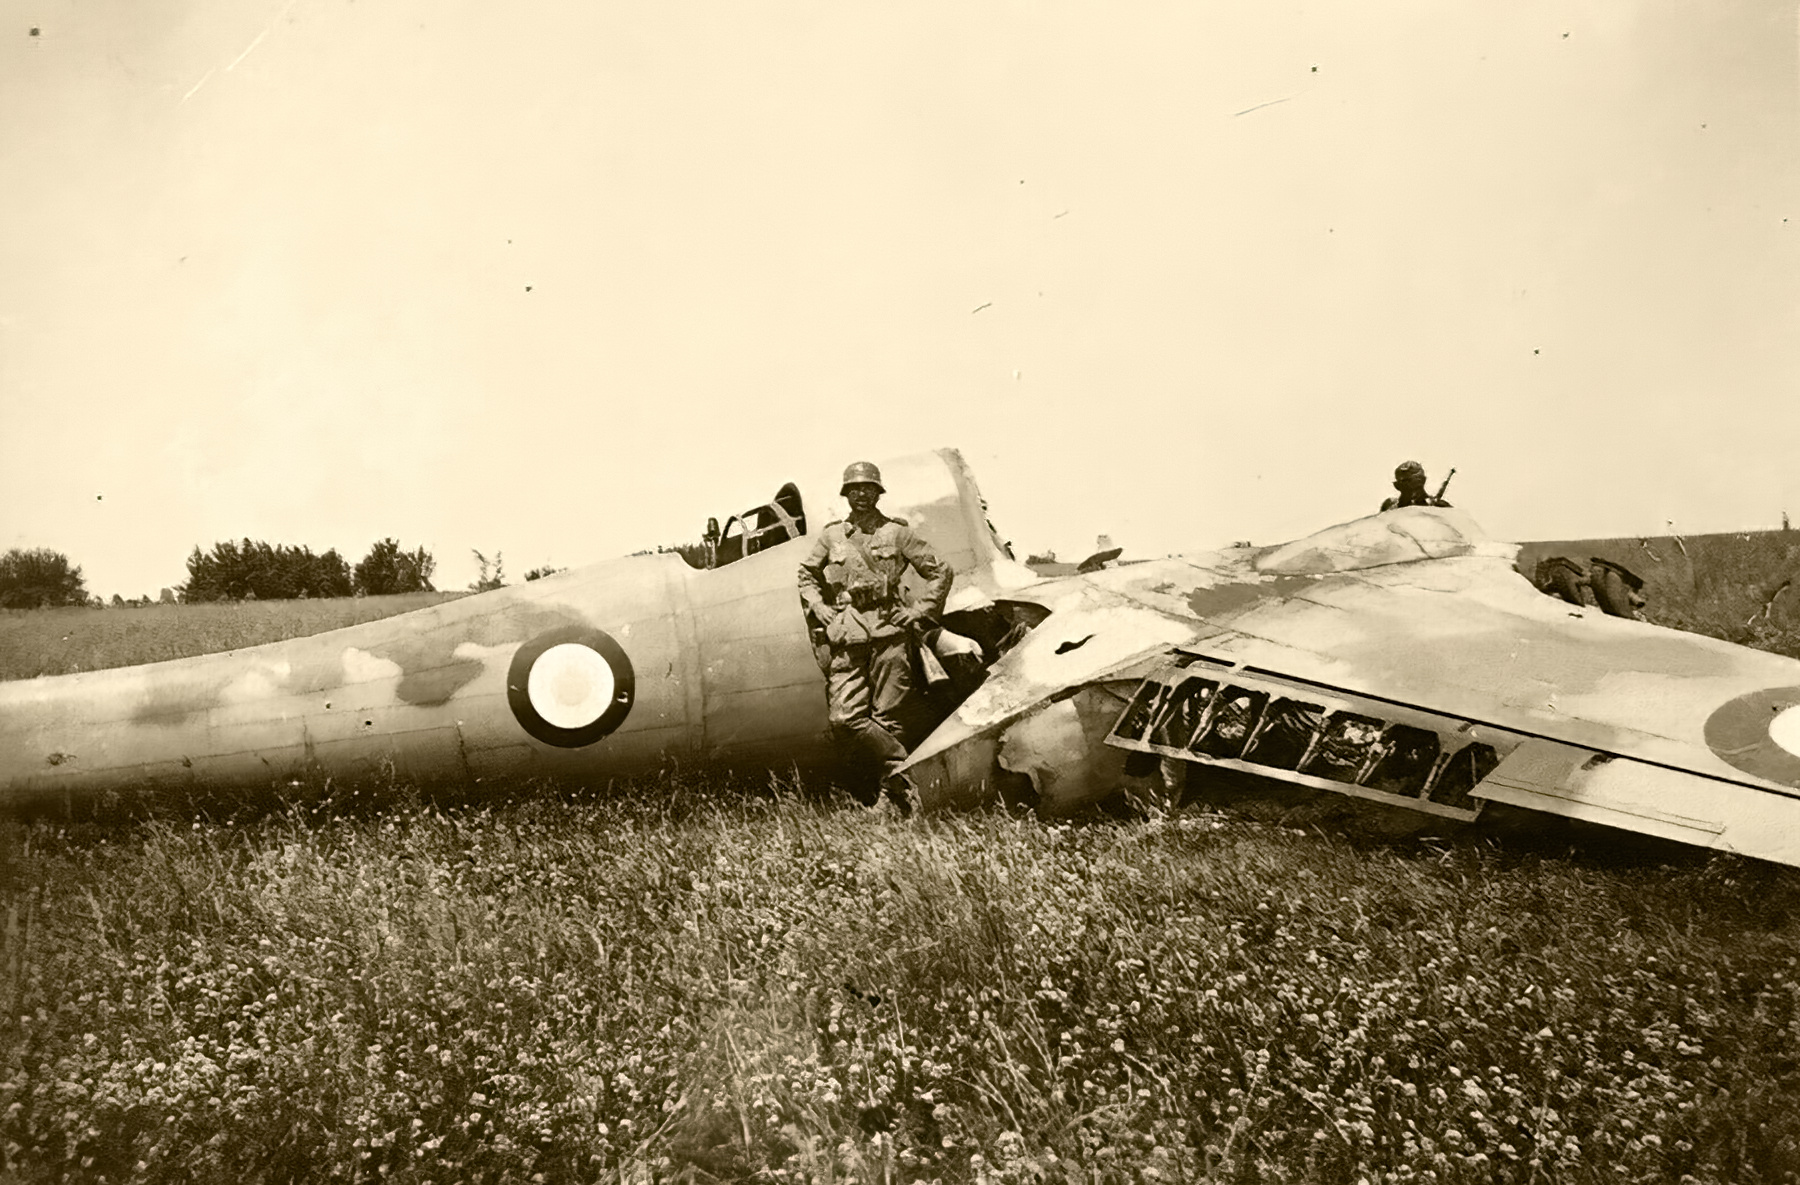 French Airforce Breguet Bre 690 burnt out remains rests abandoned in a french field France 1940 ebay 01